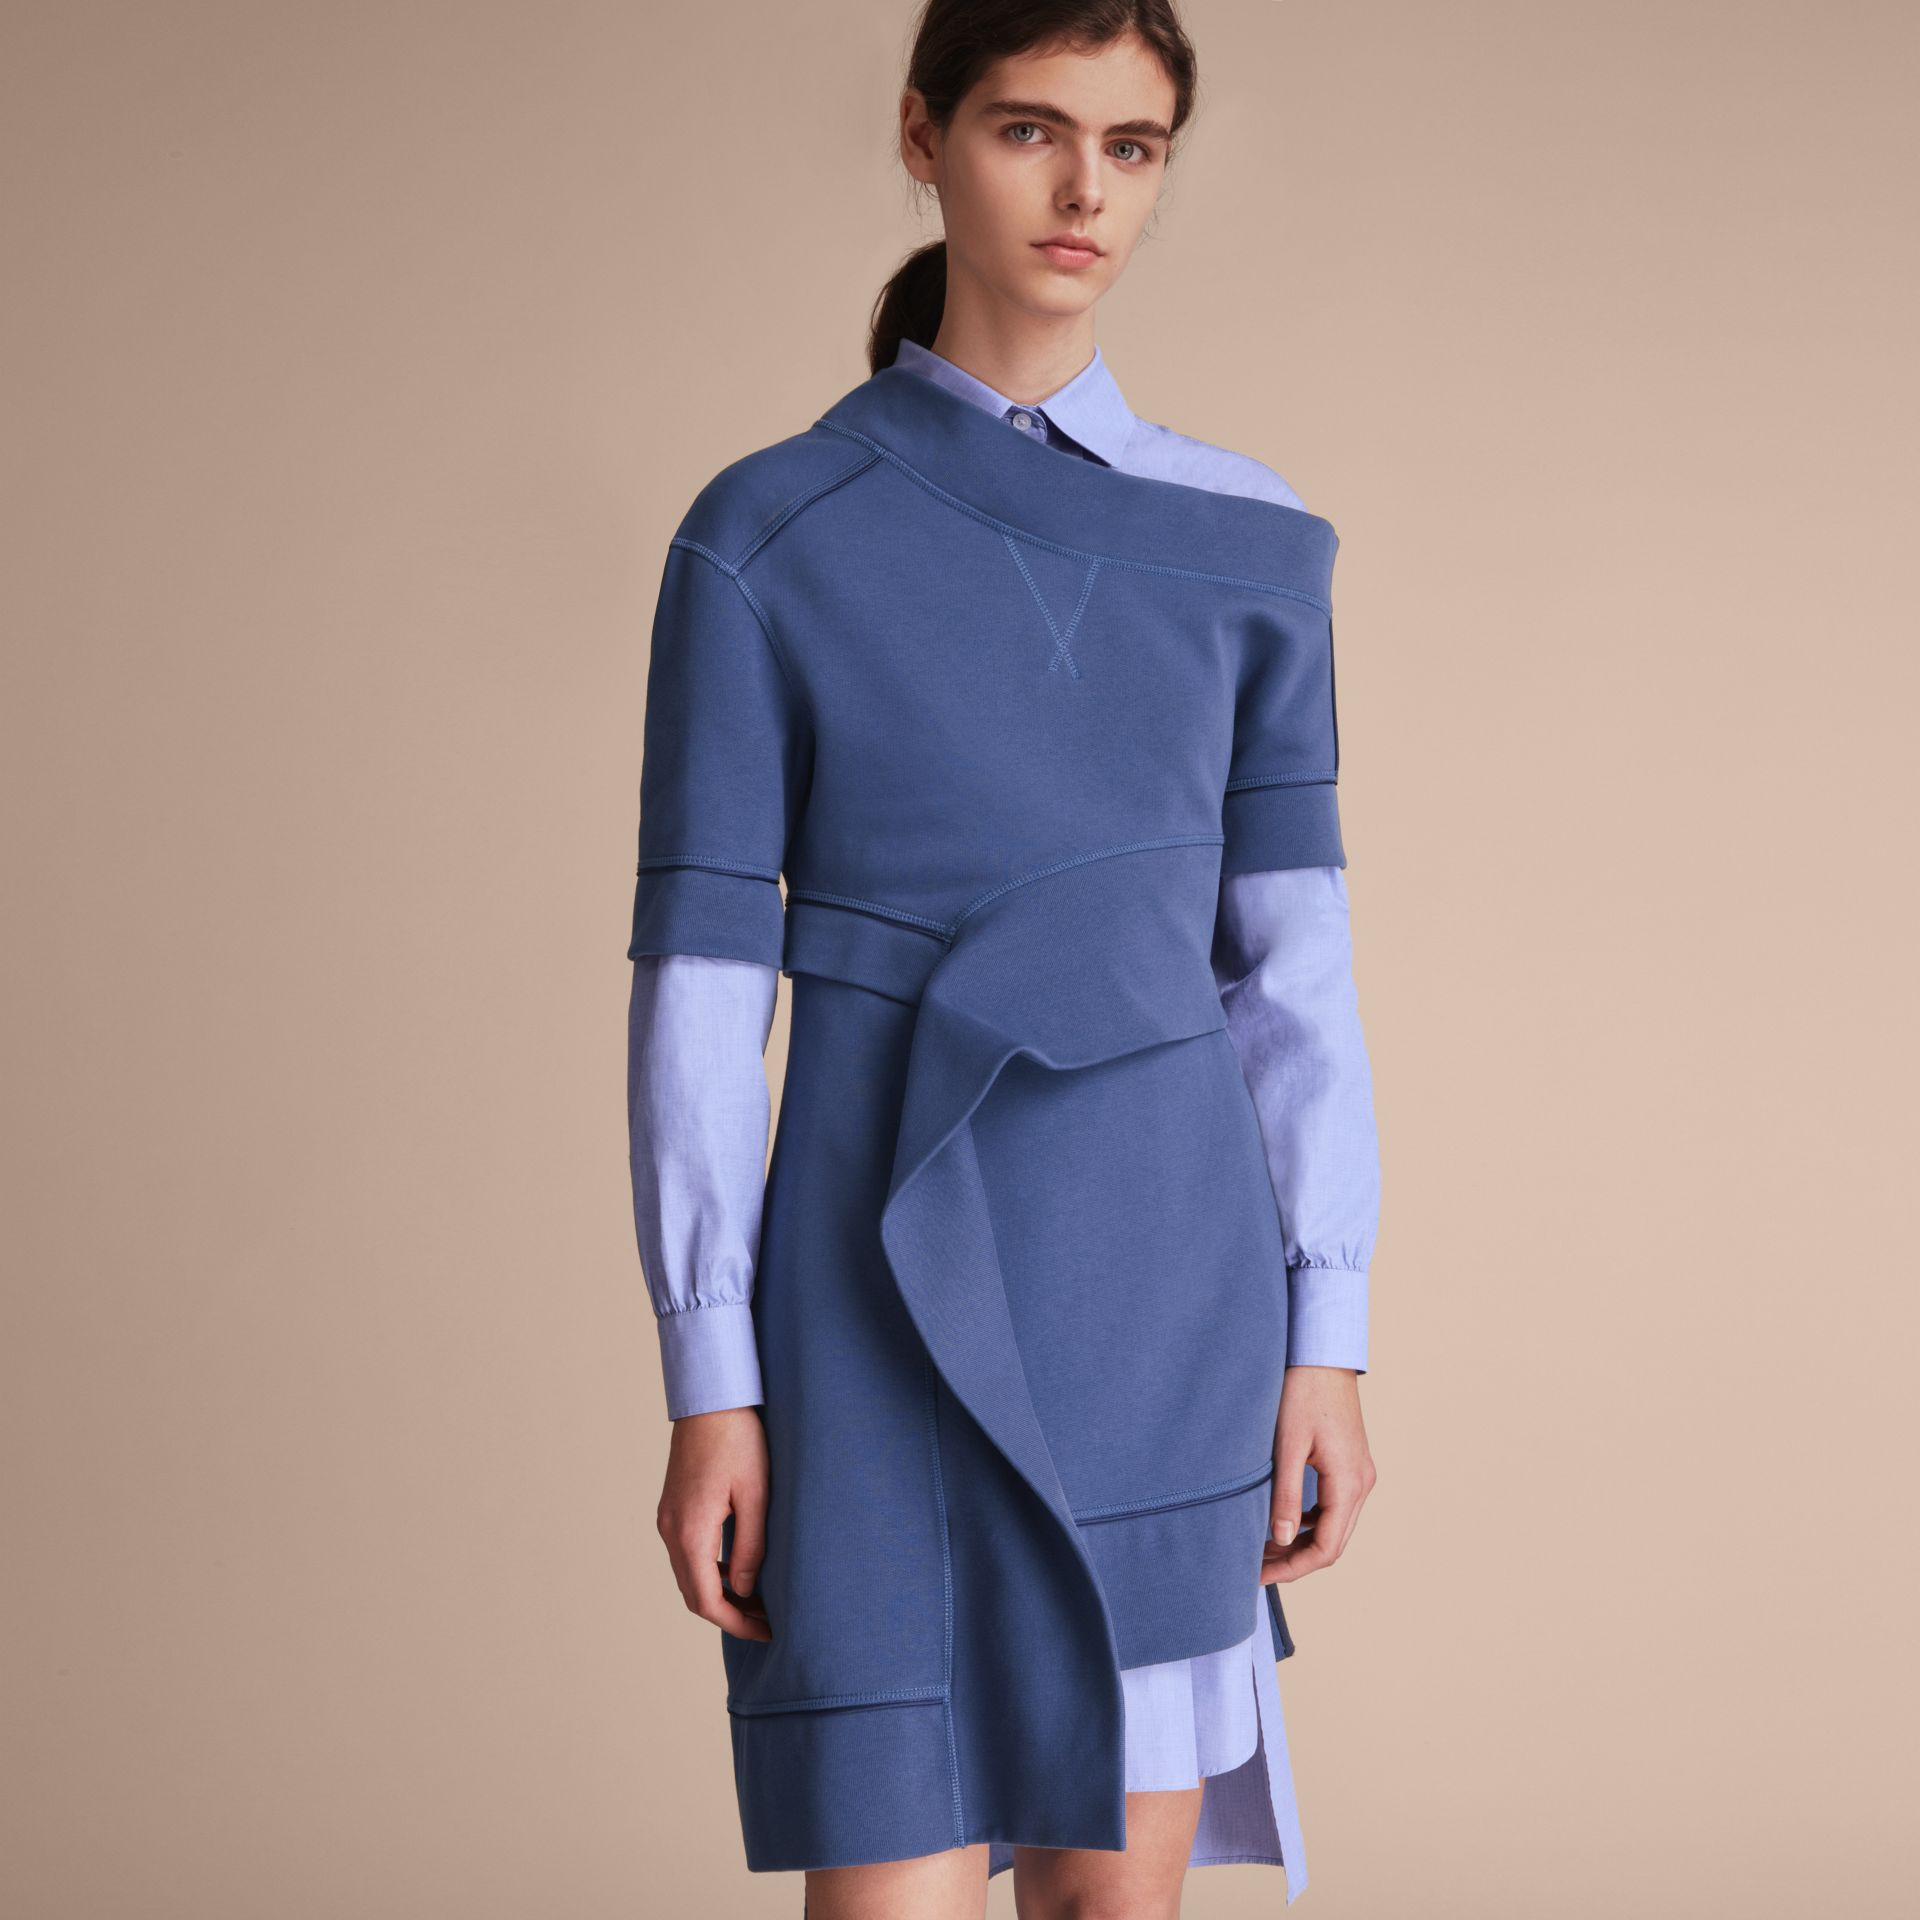 One-shoulder Sweatshirt Dress in Pewter Blue - Women | Burberry Singapore - gallery image 6